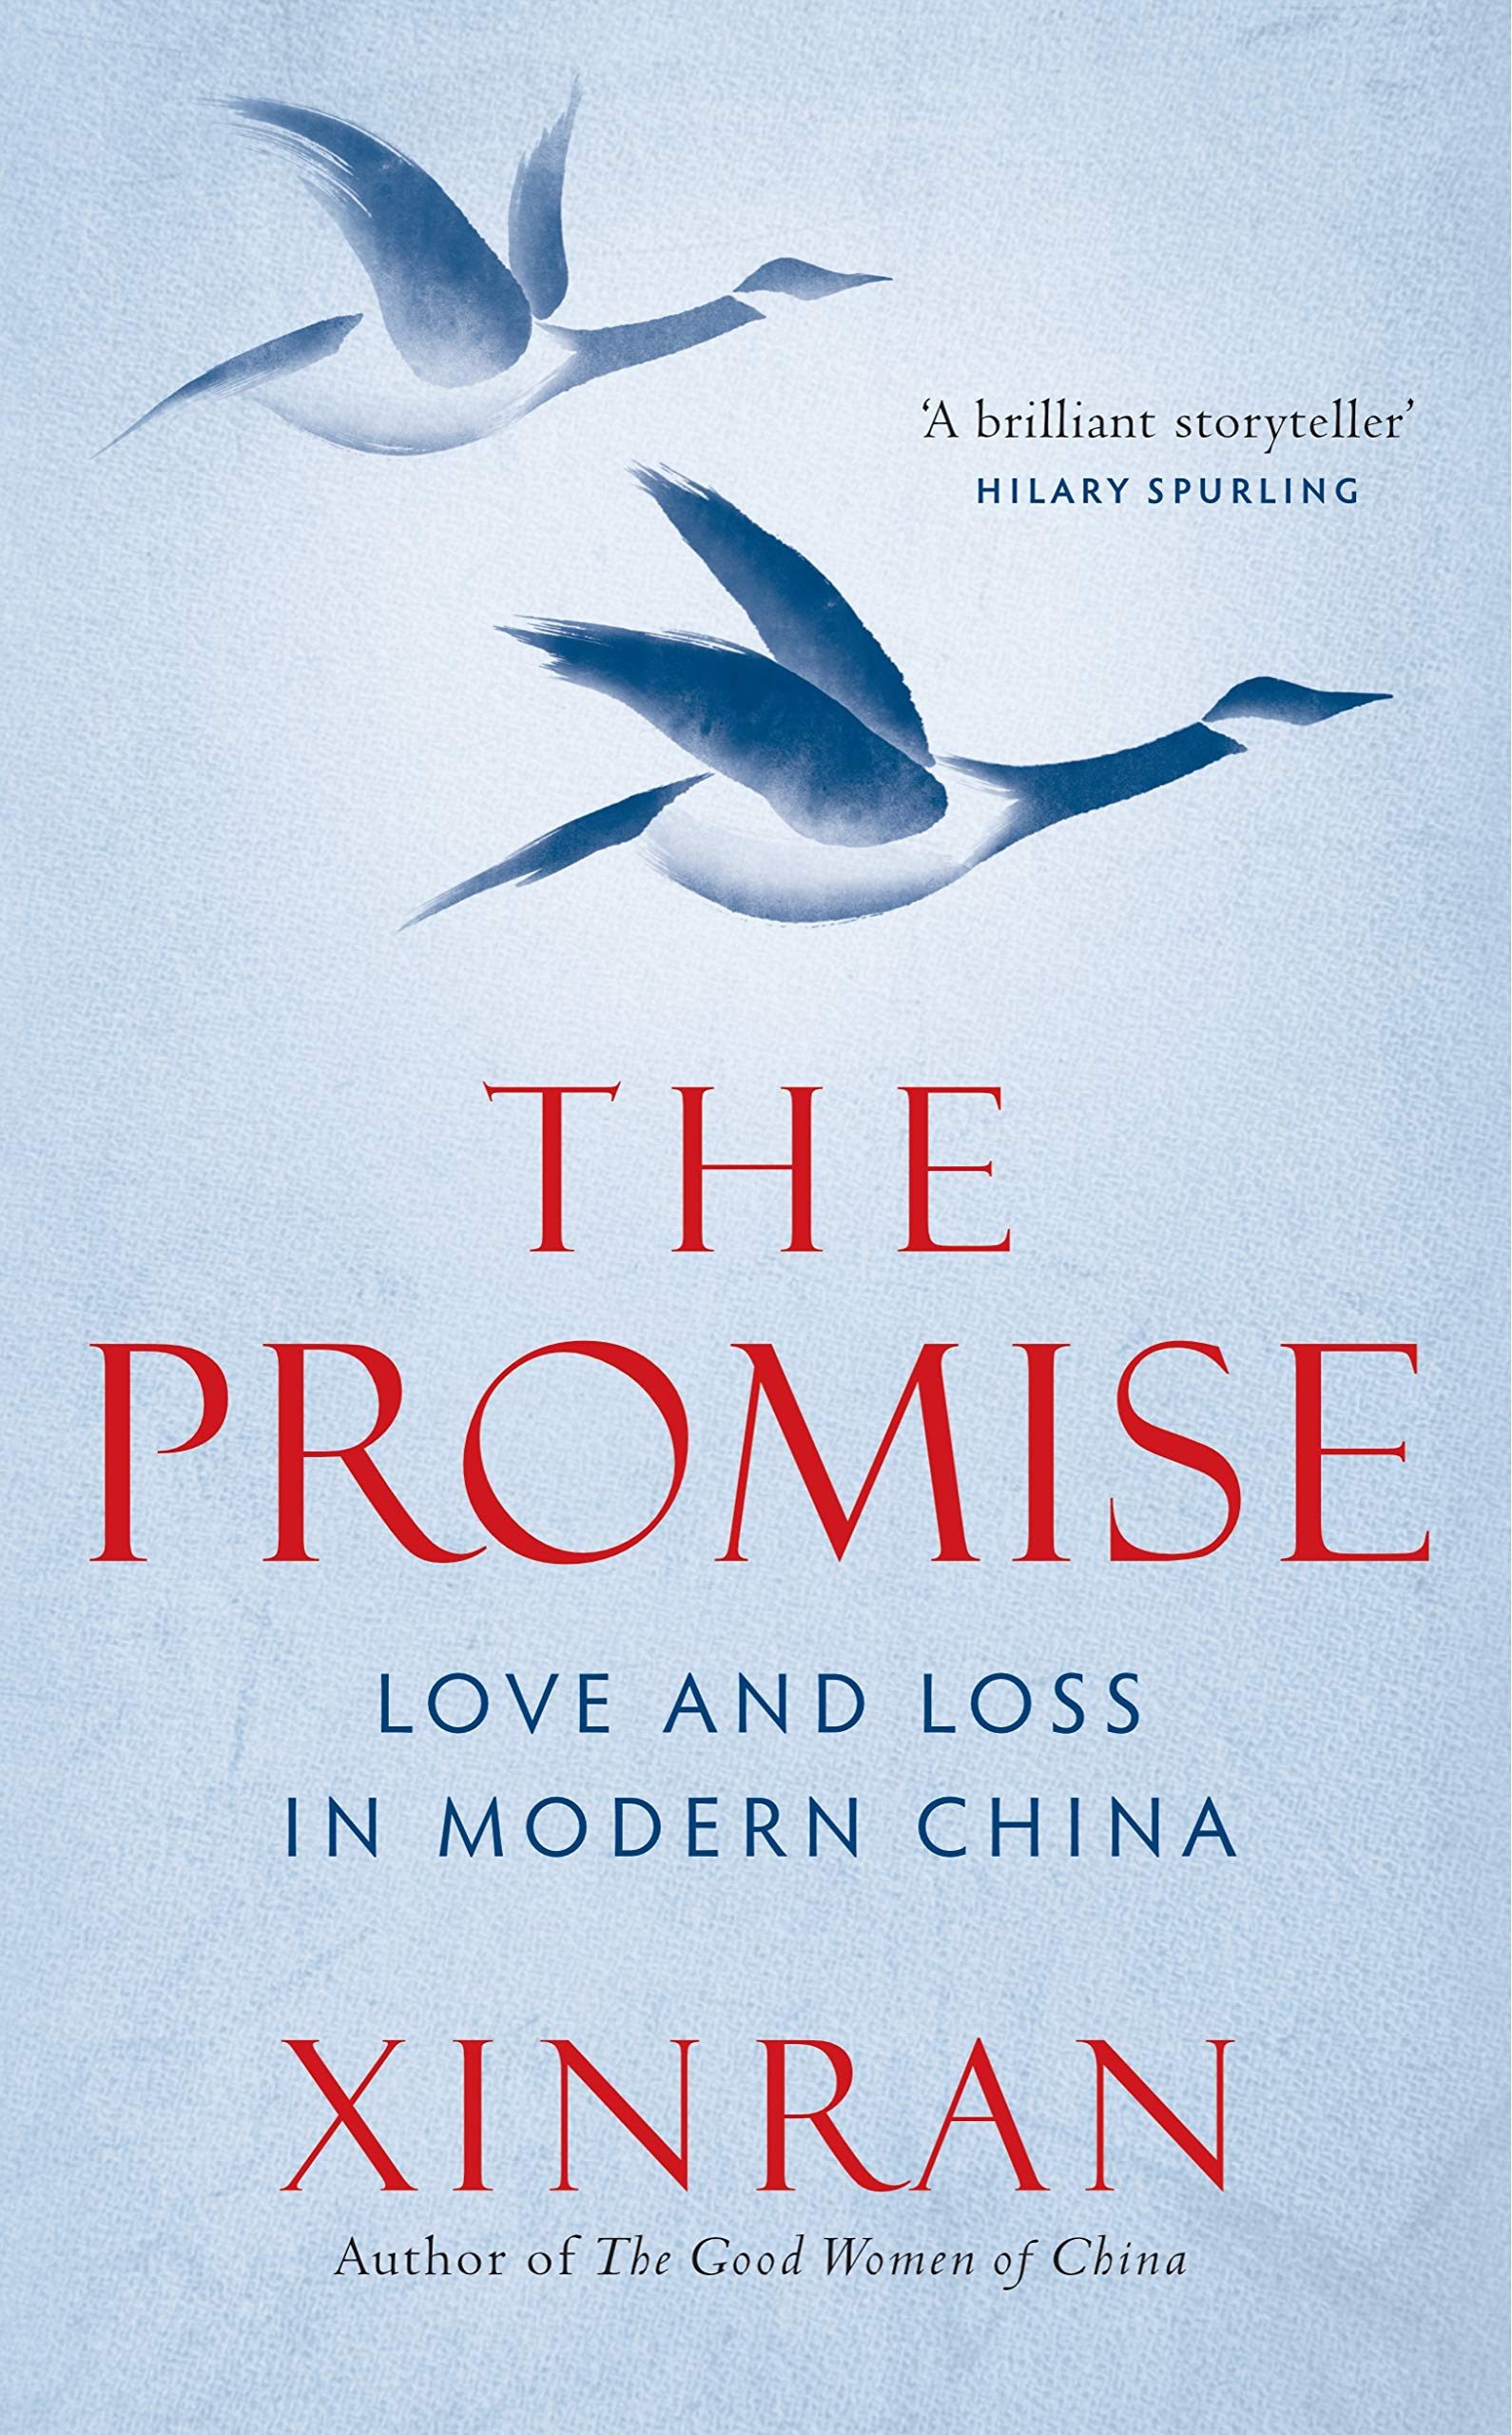 The Promise: Tales of Love and Loss: Amazon.co.uk: Xinran Xue:  9781788313629: Books